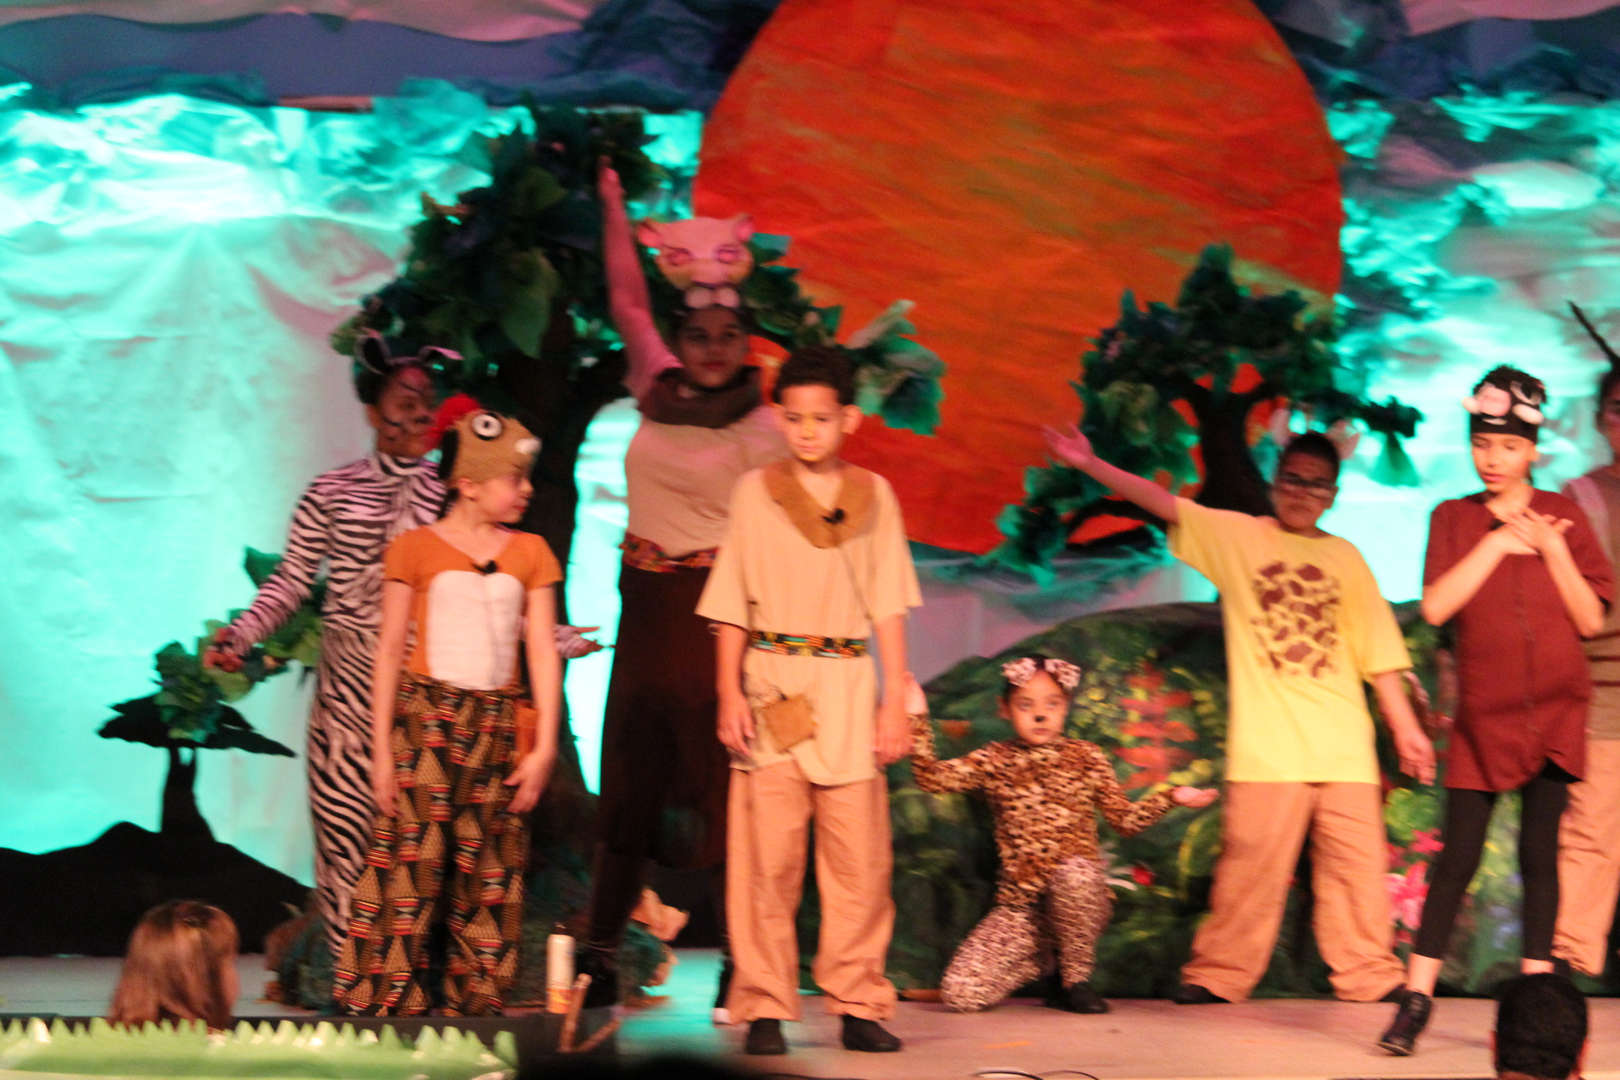 Young Simba, Pumba and Timon on stage